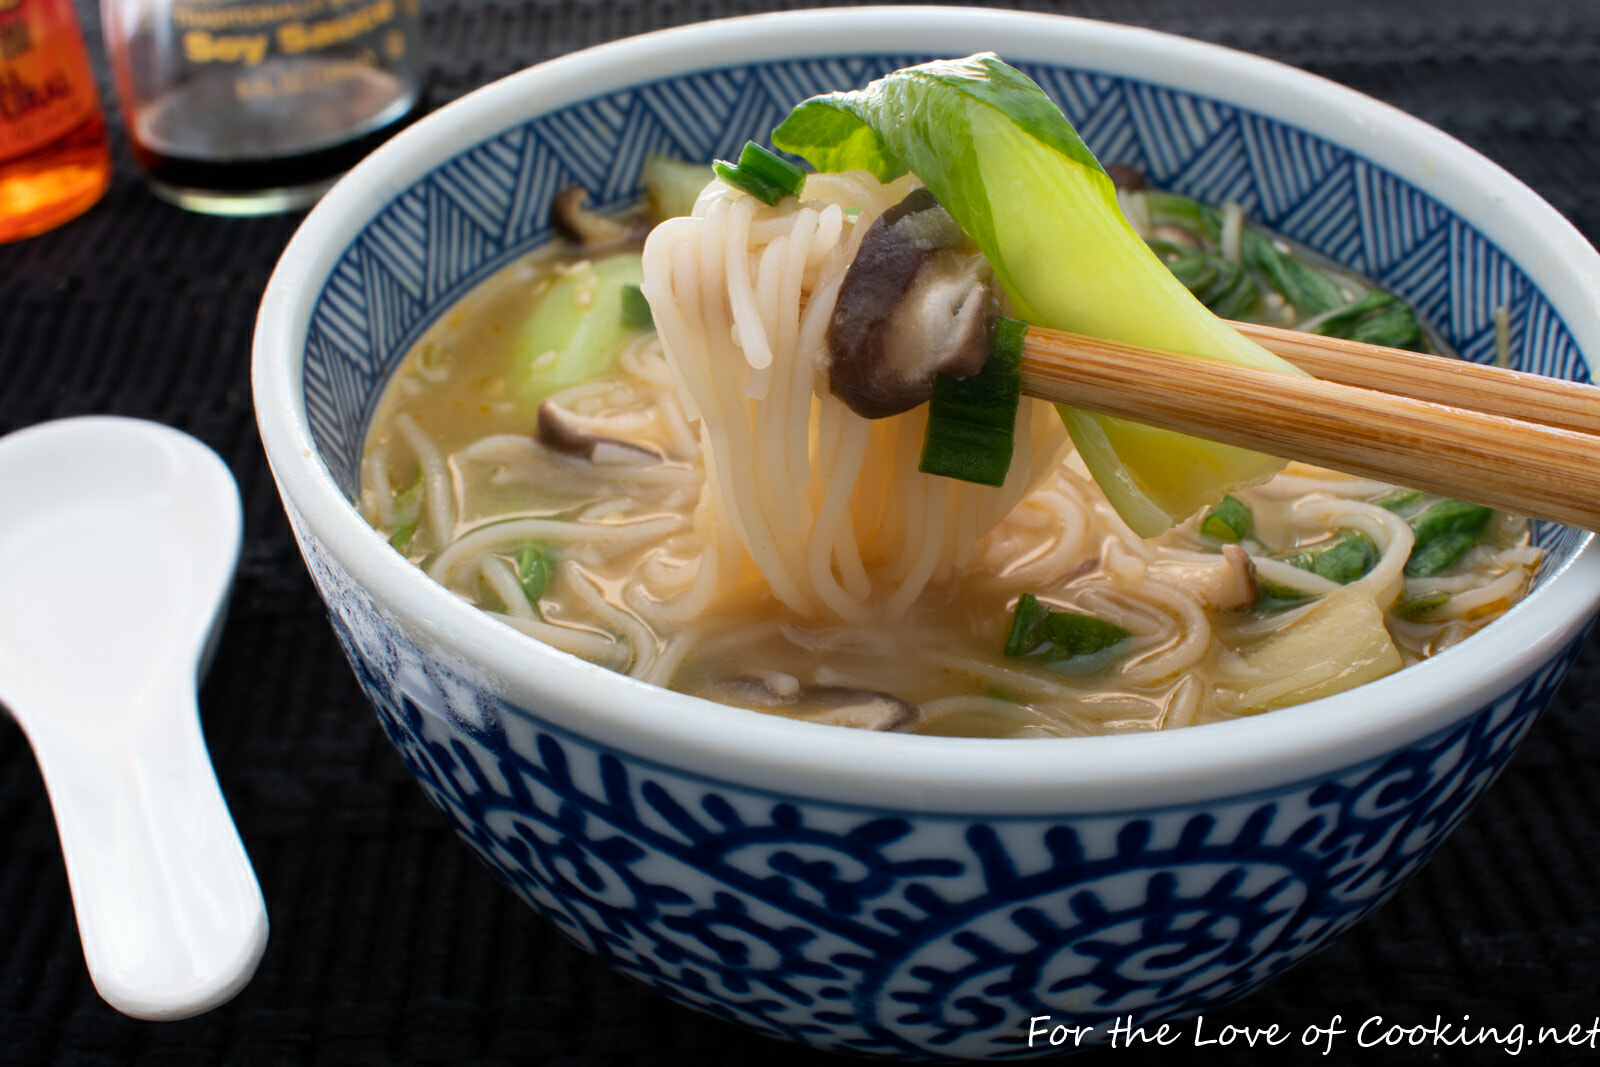 Ginger Garlic Noodle Soup with Bok Choy and Shiitake Mushrooms